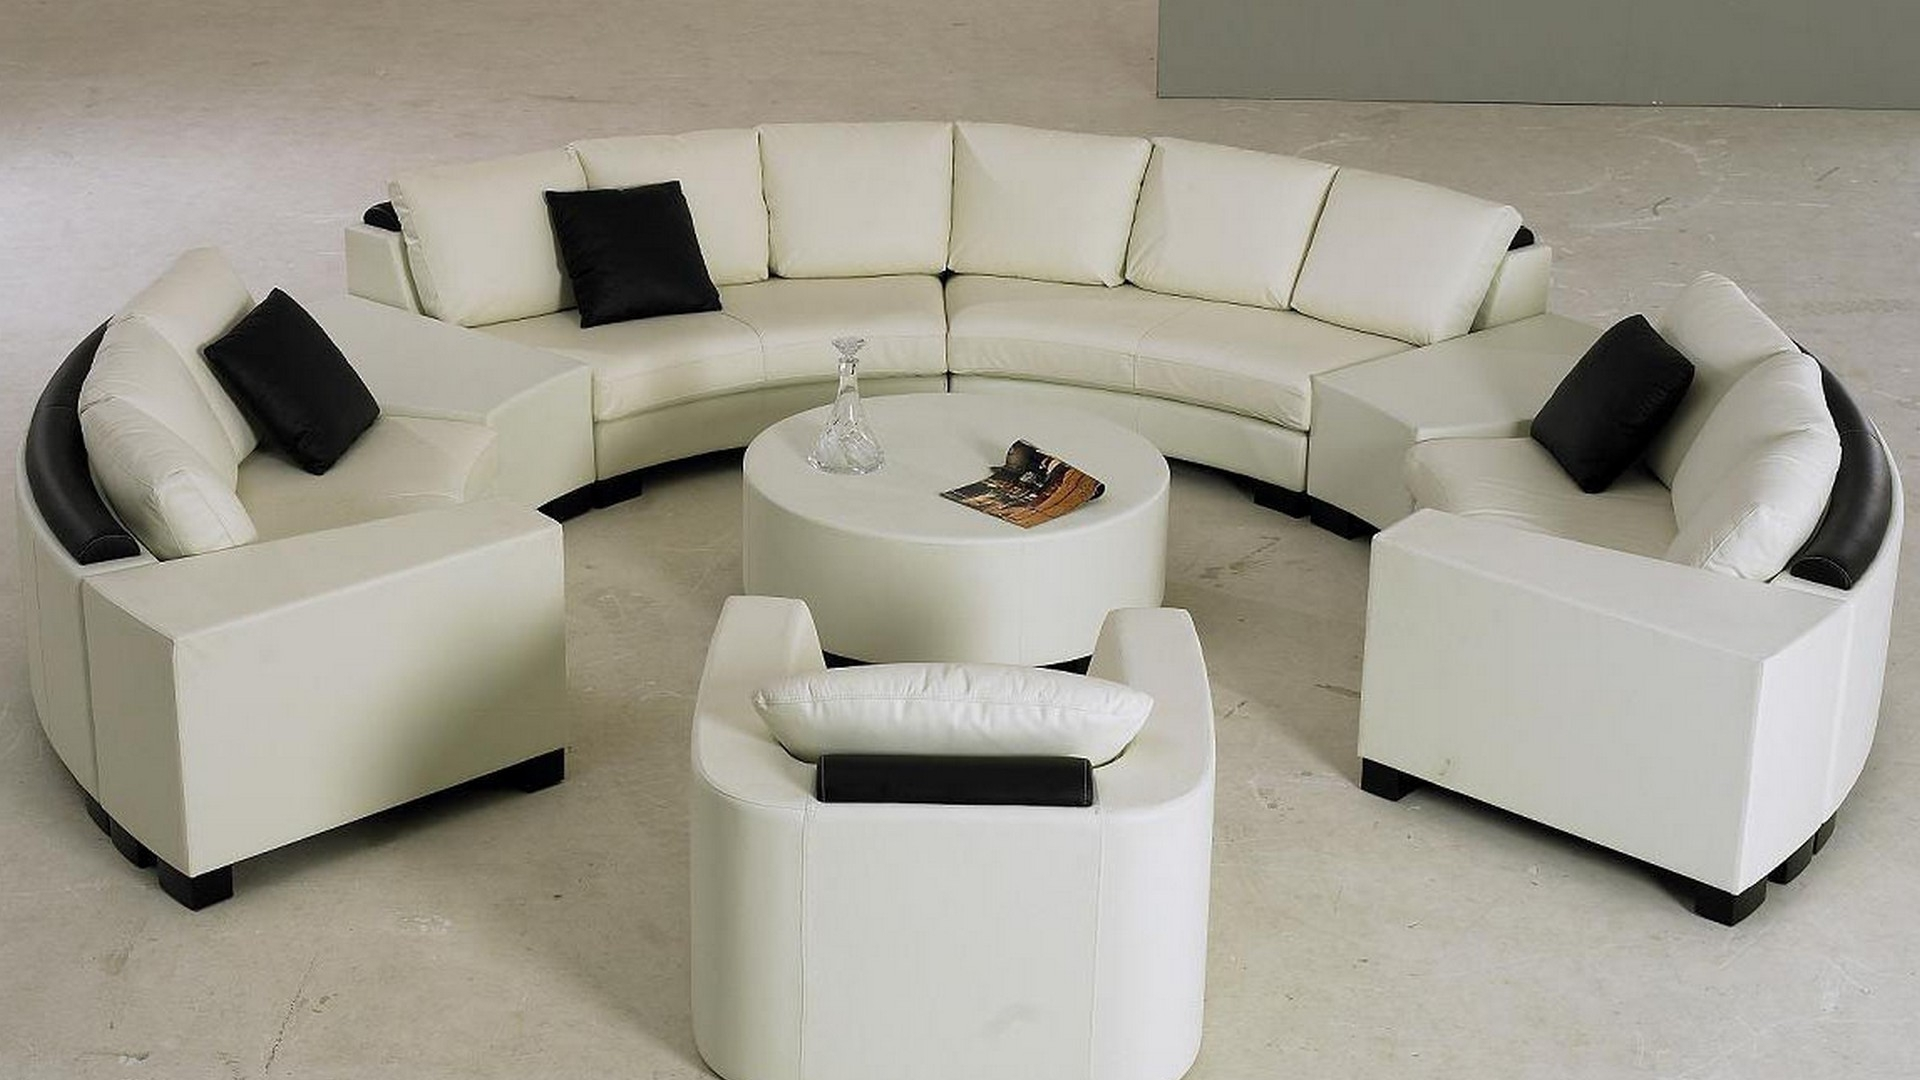 Engagng White Half Round Sofa With Black Pillows And Rond Table Regarding Most Up To Date Round Sofas (View 10 of 20)